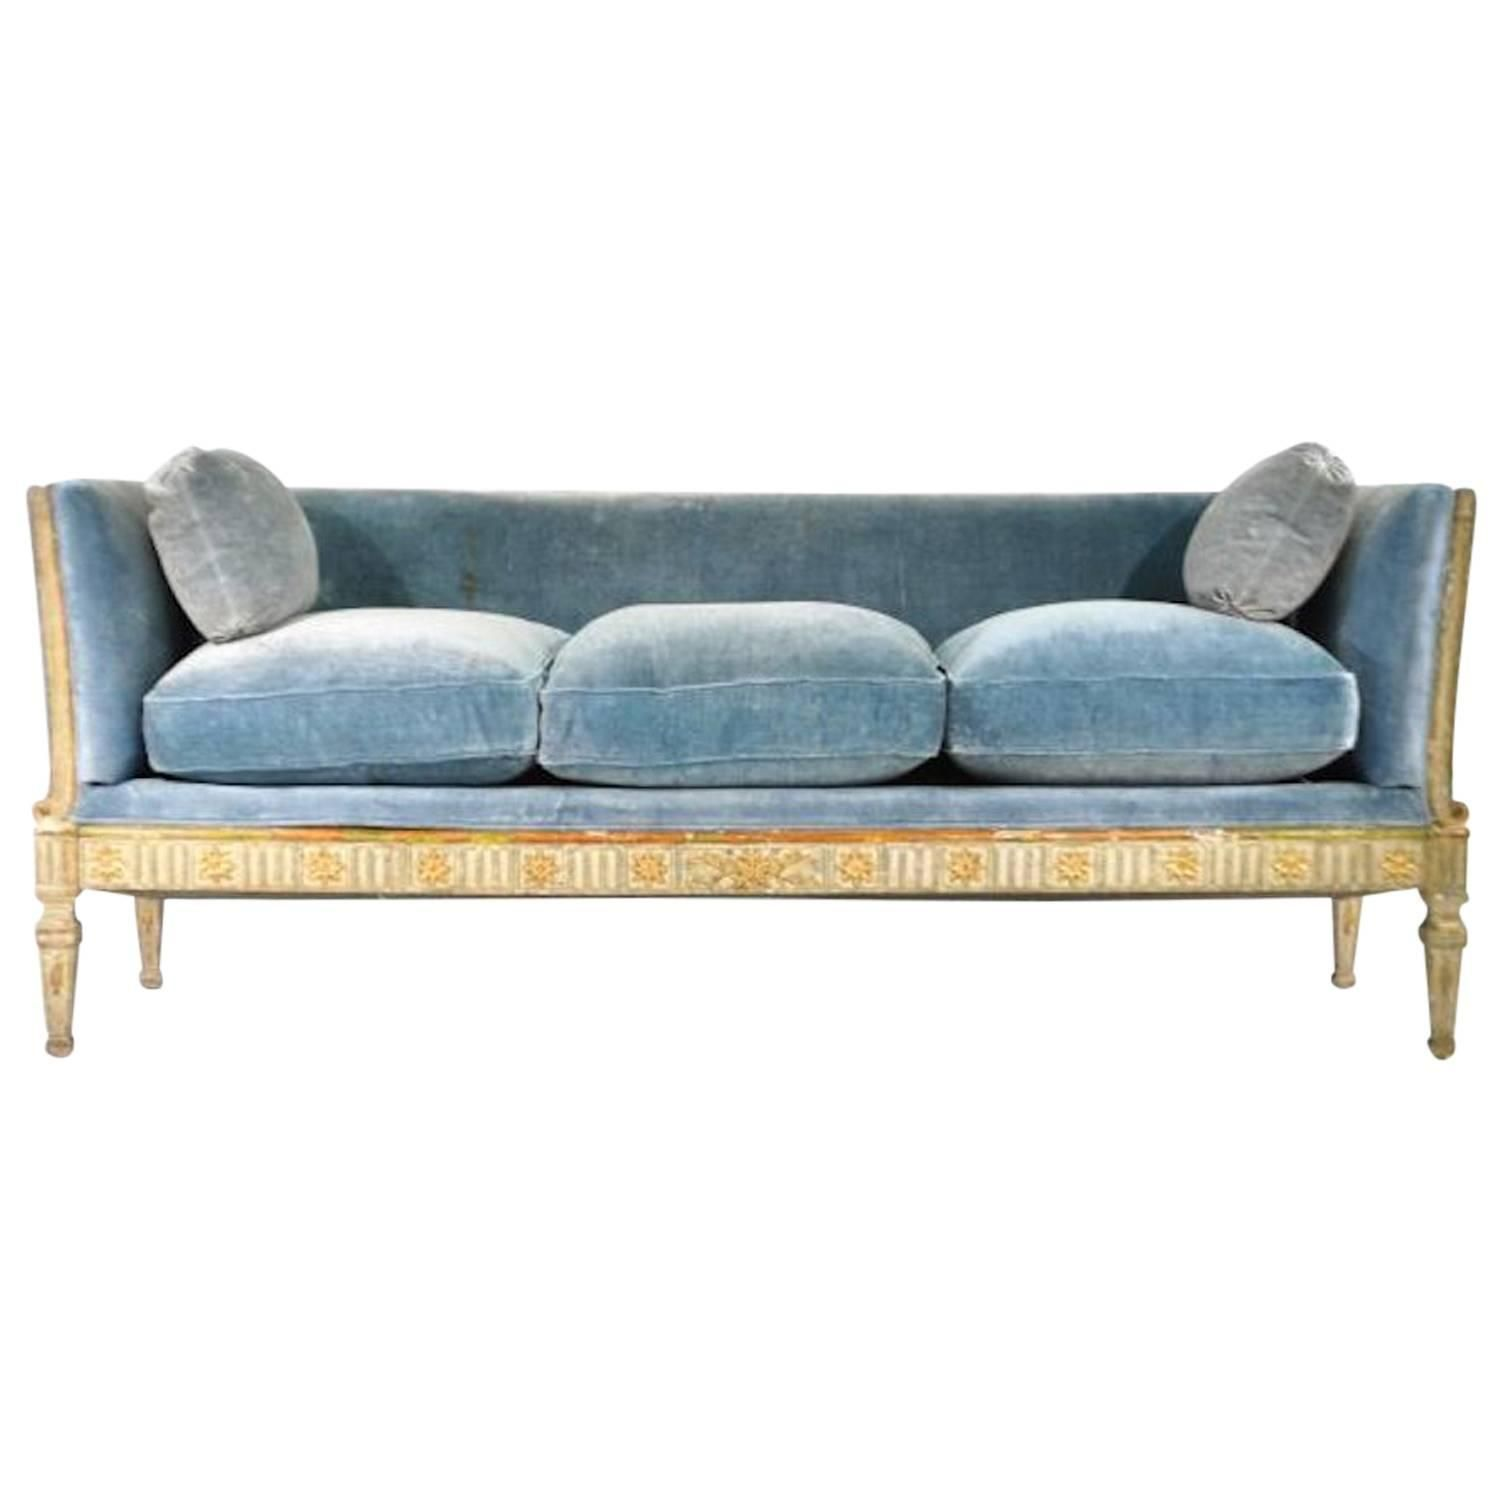 Early 19th Century Swedish Gustavian Sofa